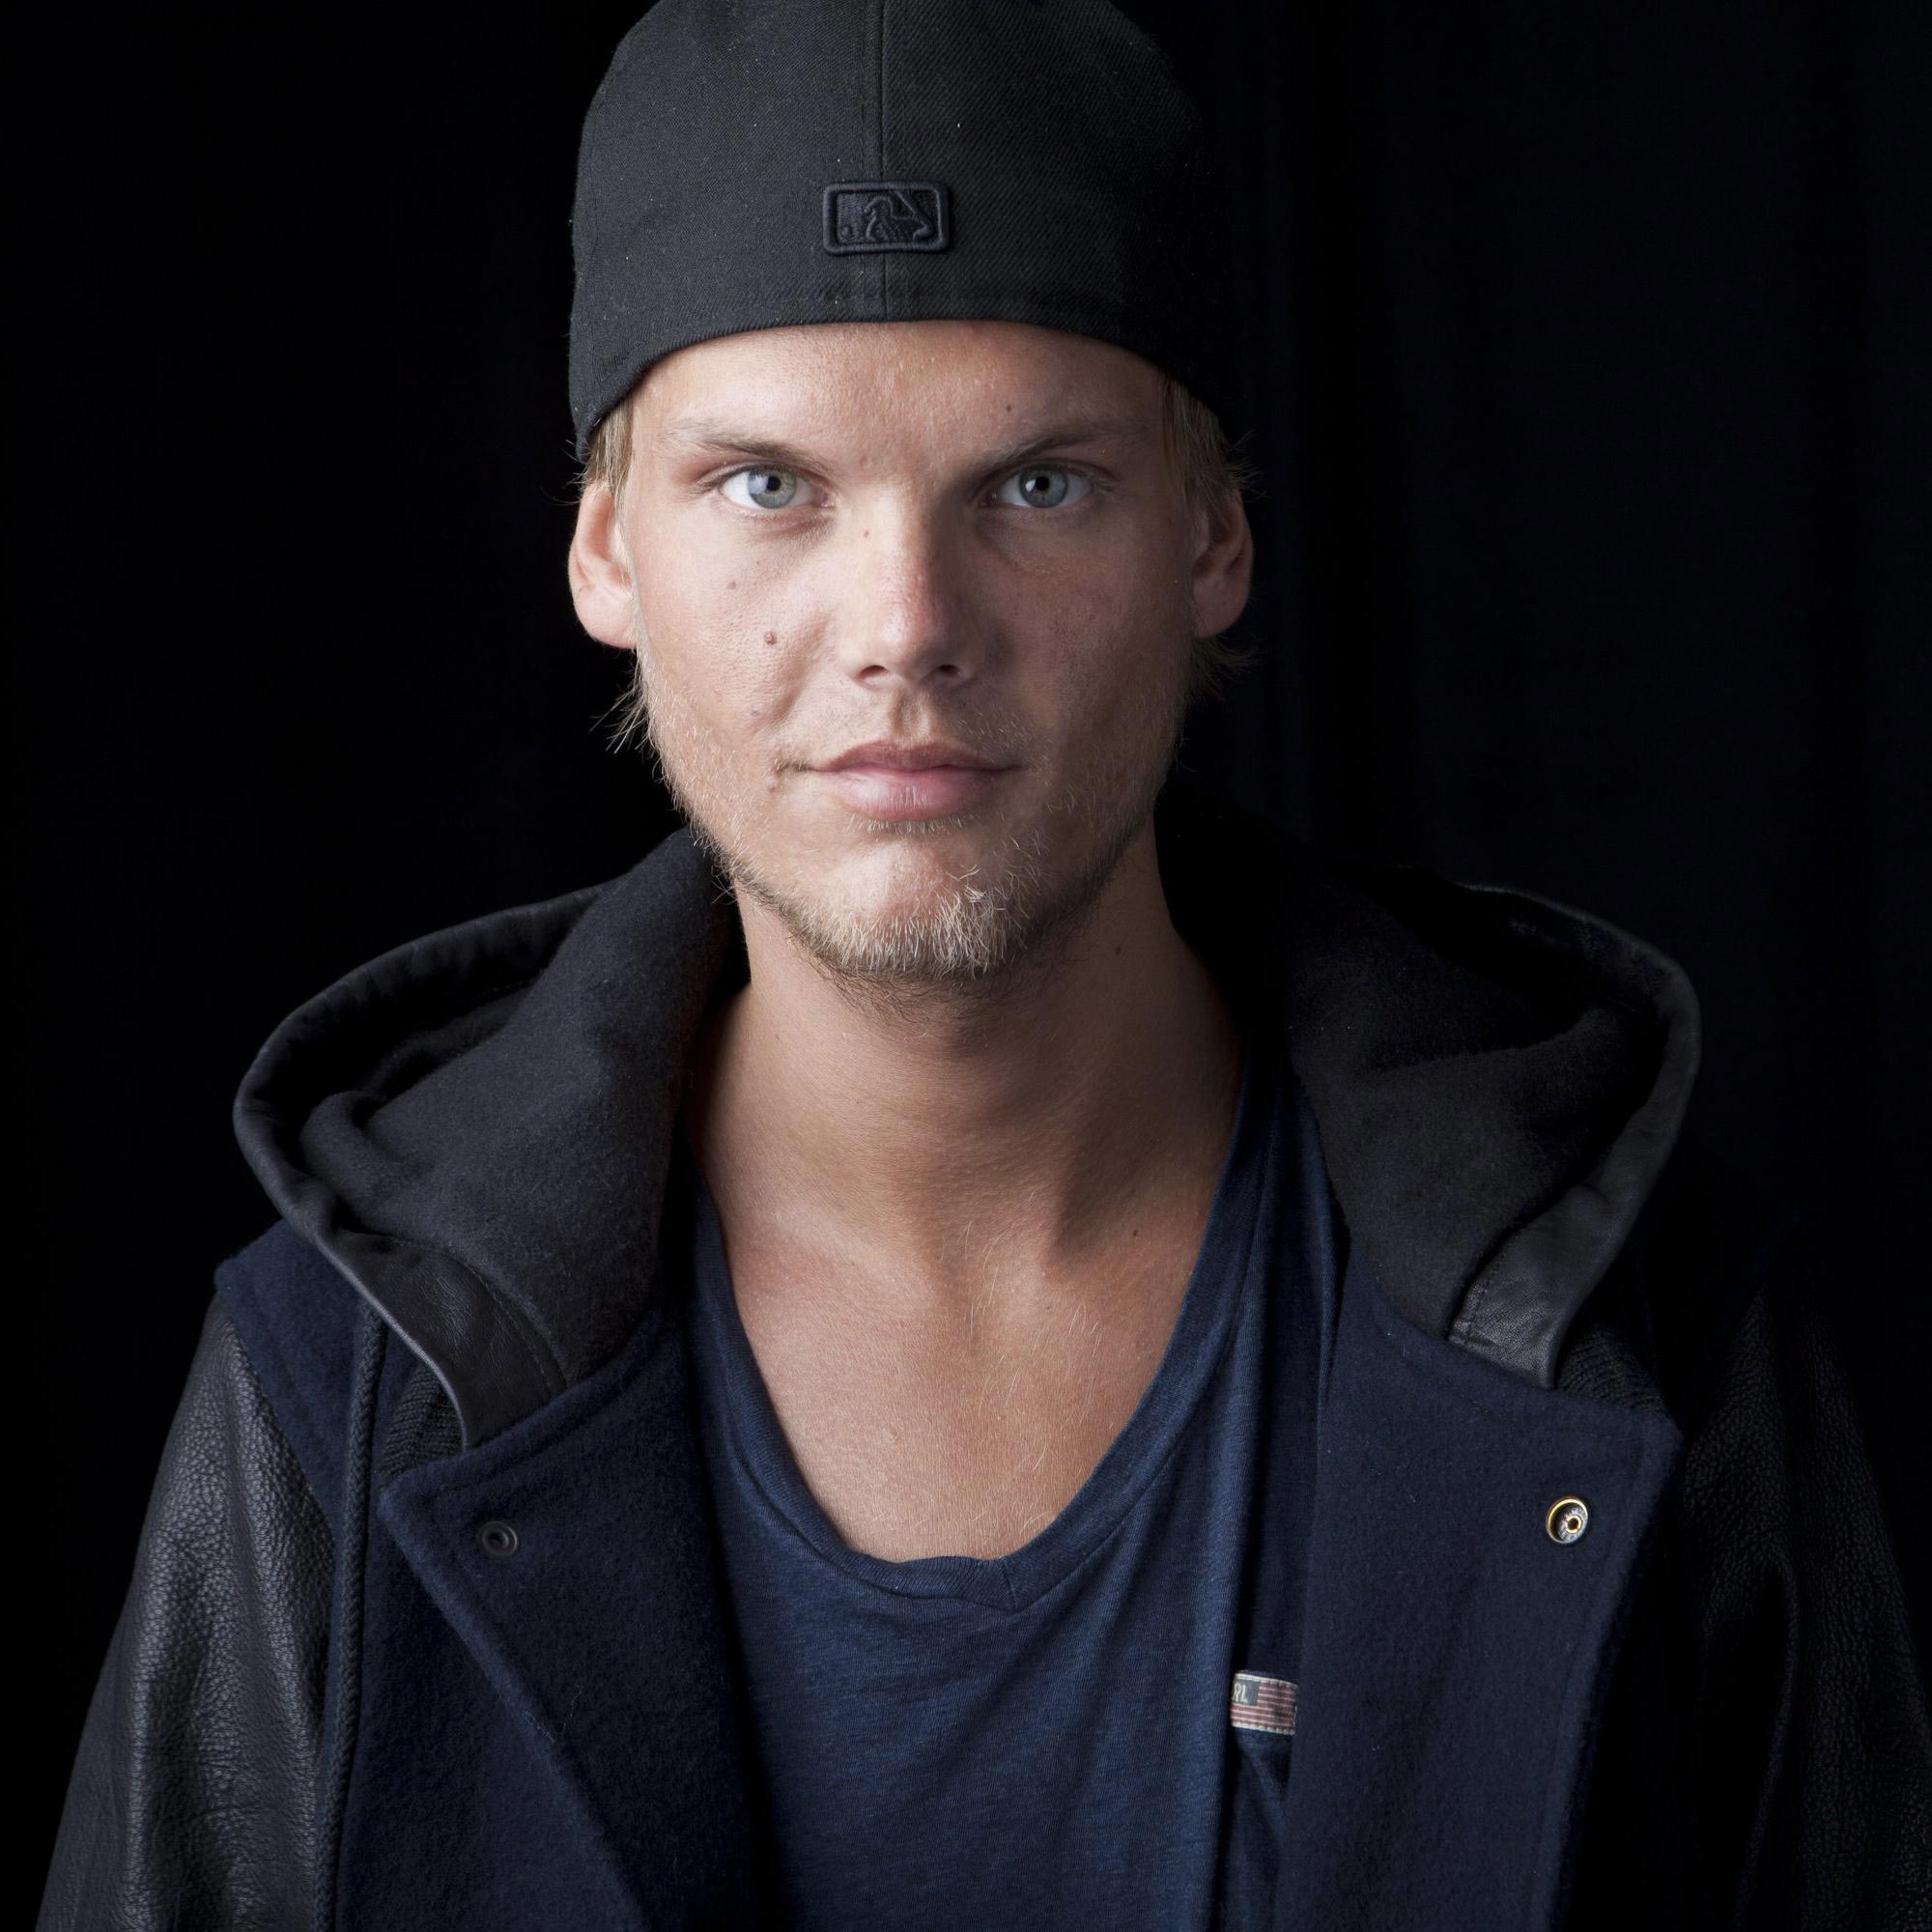 Avicii Profile | Net Worth Space